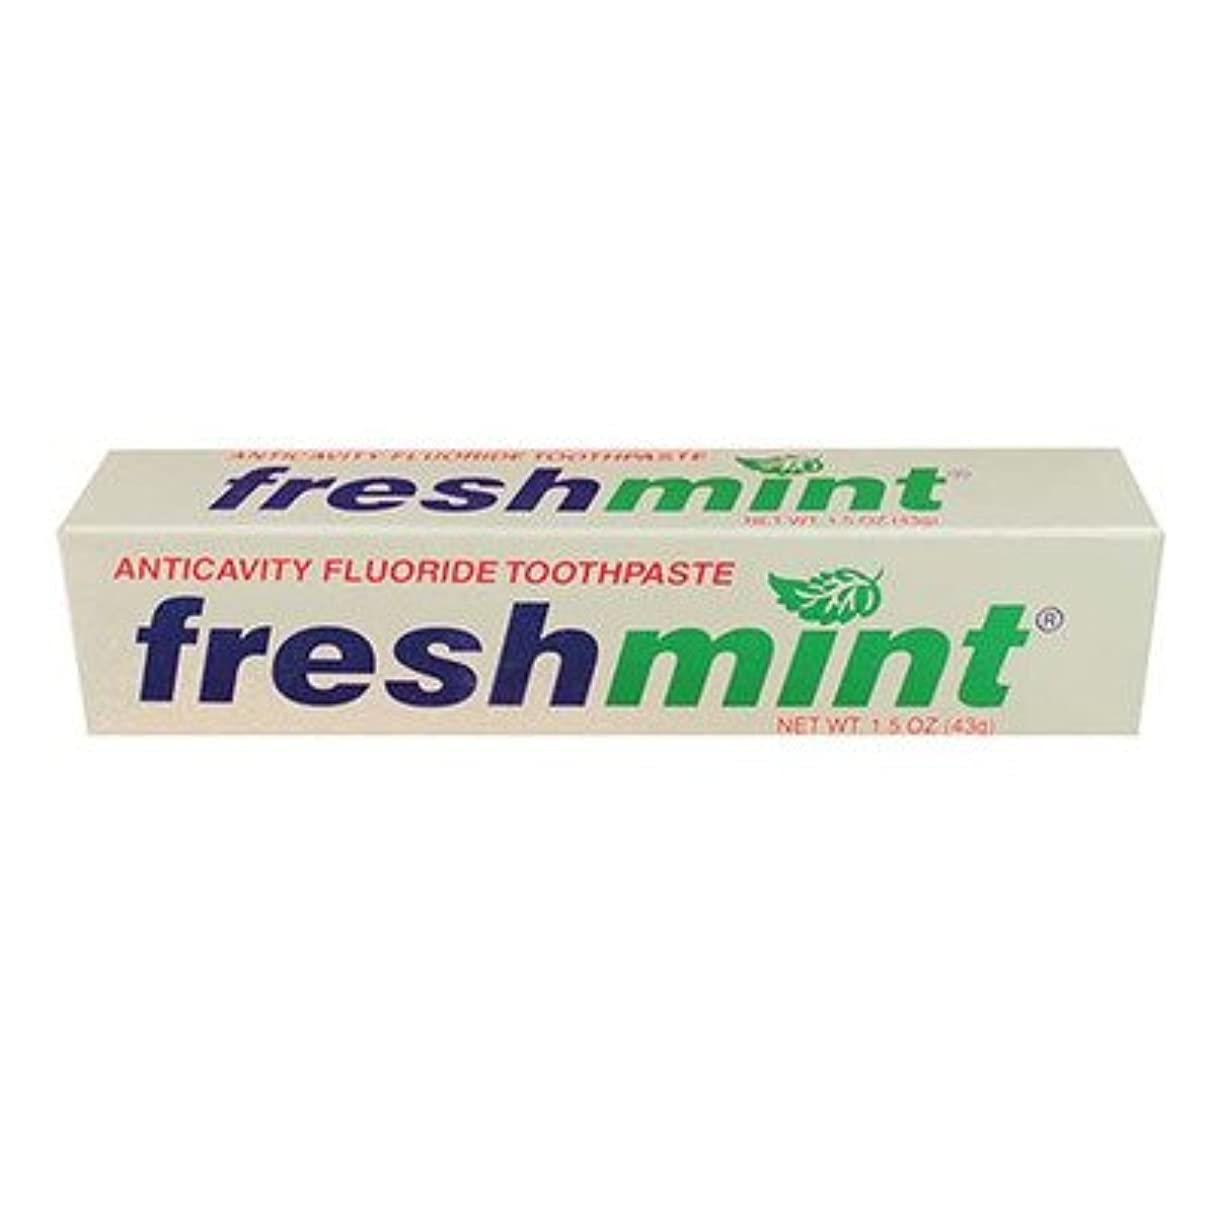 不愉快発症許可Freshmint Fluoride Toothpaste, 1.5 oz (Case of 144) by Freshmint